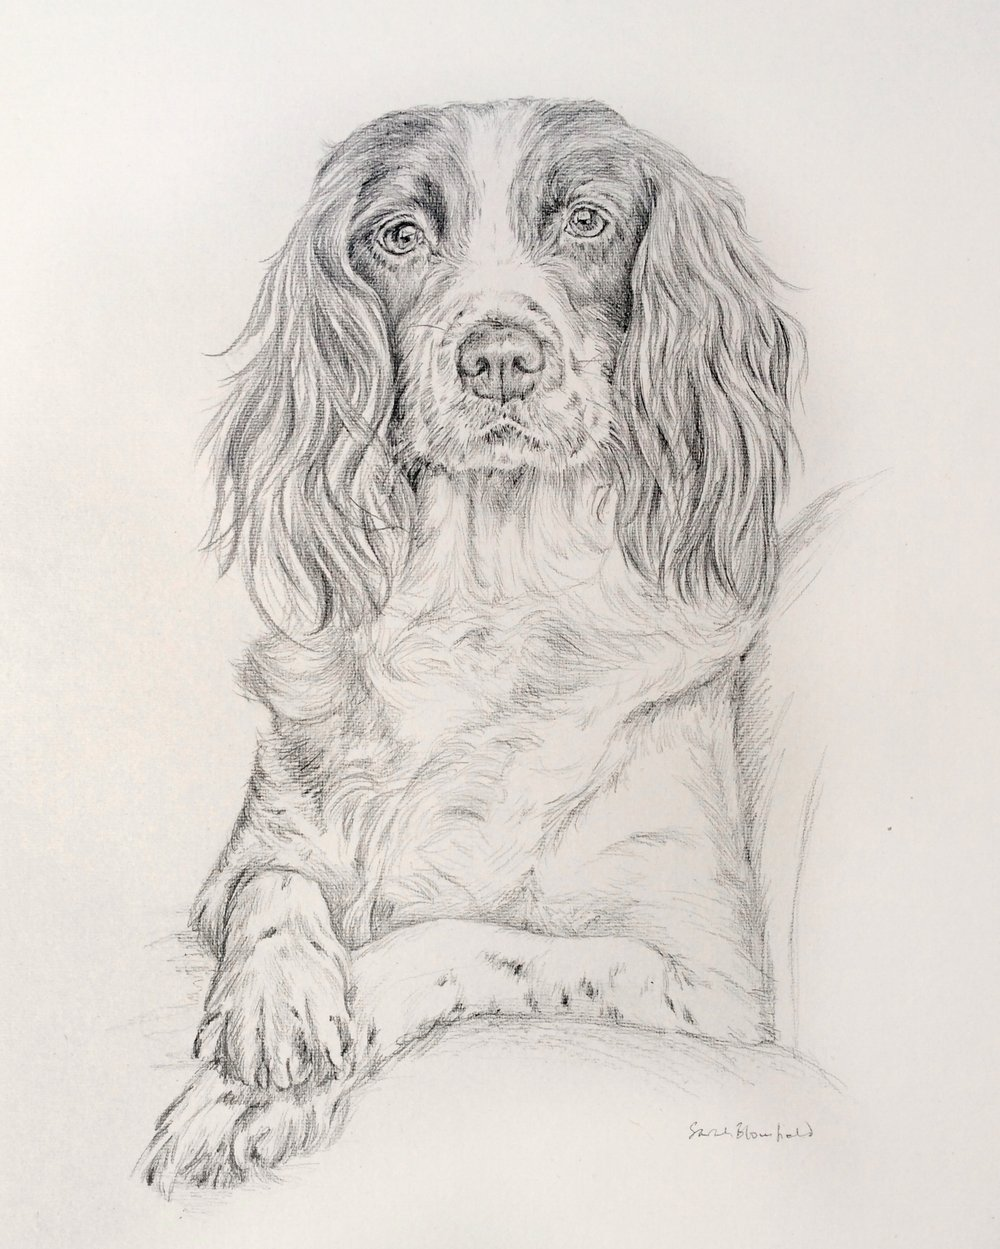 Spaniel on sofa, pencil on hand made paper